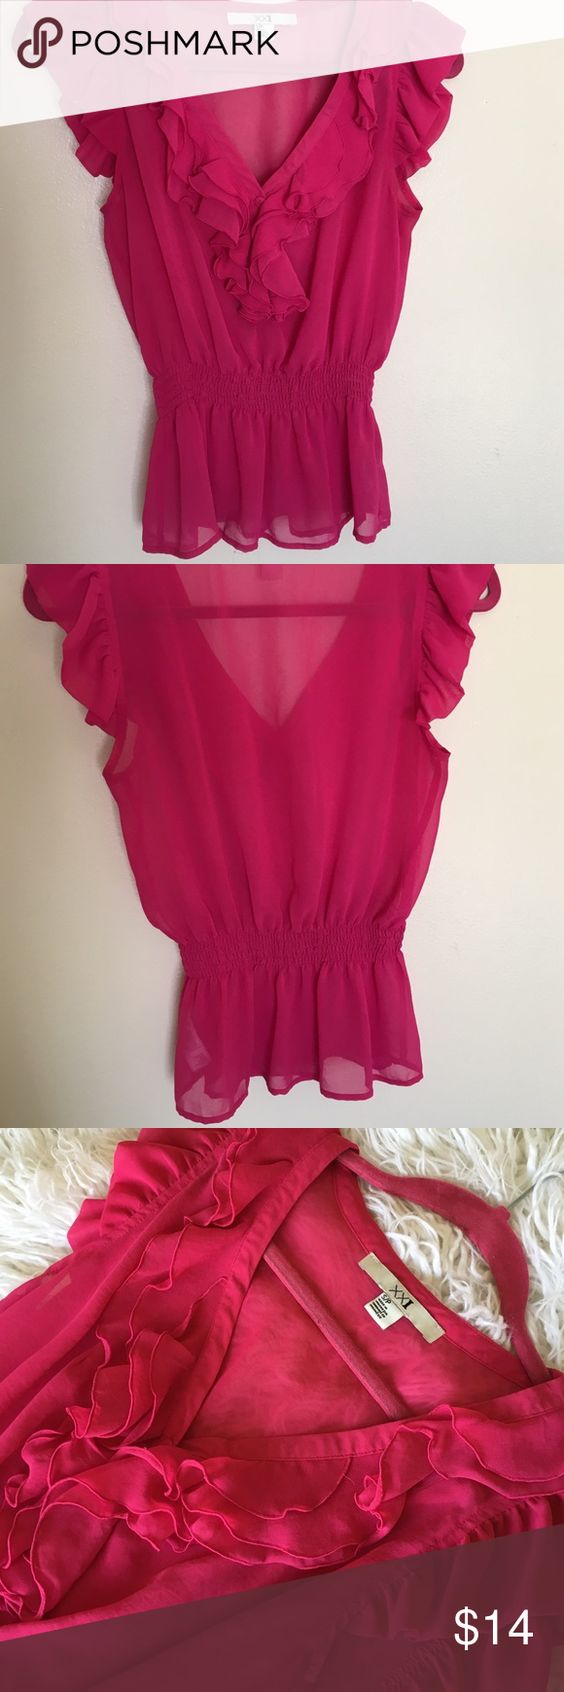 Hot pink blouse I love this shirt! The last picture shows the true vibrant pink color that it is. It sinches in the middle and gives you a great shape. It is in perfect condition. Forever 21 Tops Blouses